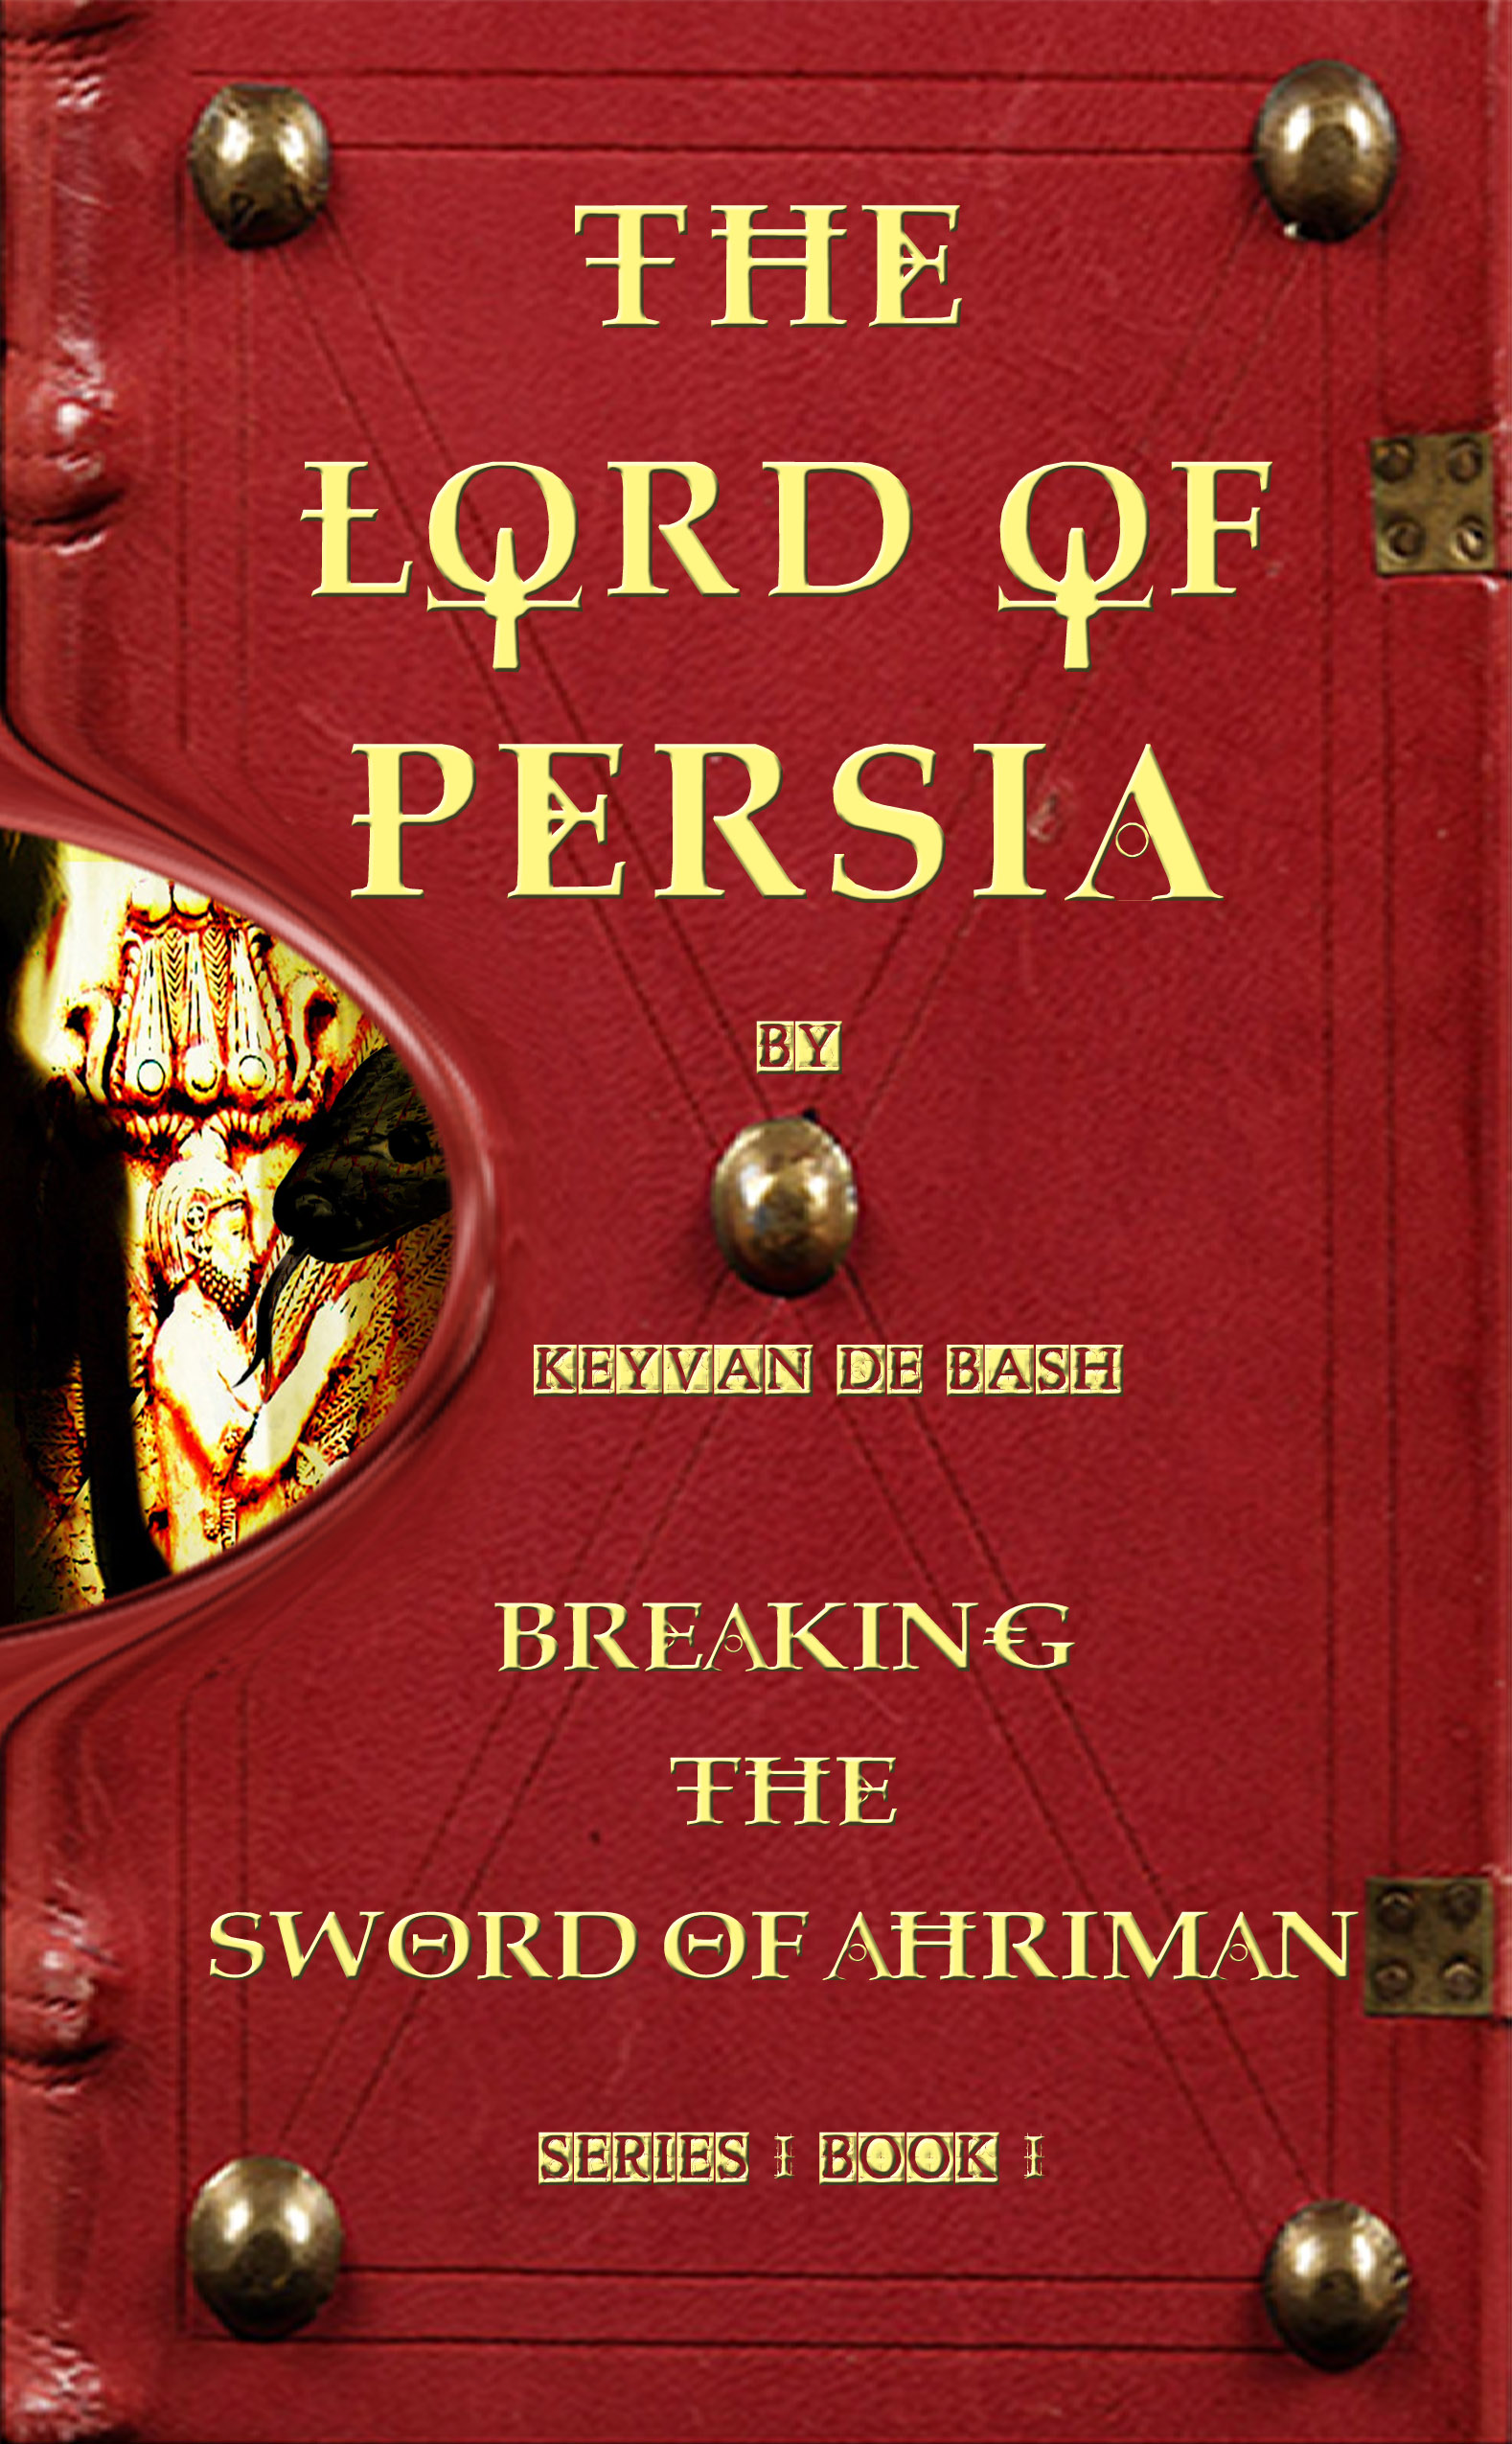 The Lord of Persia